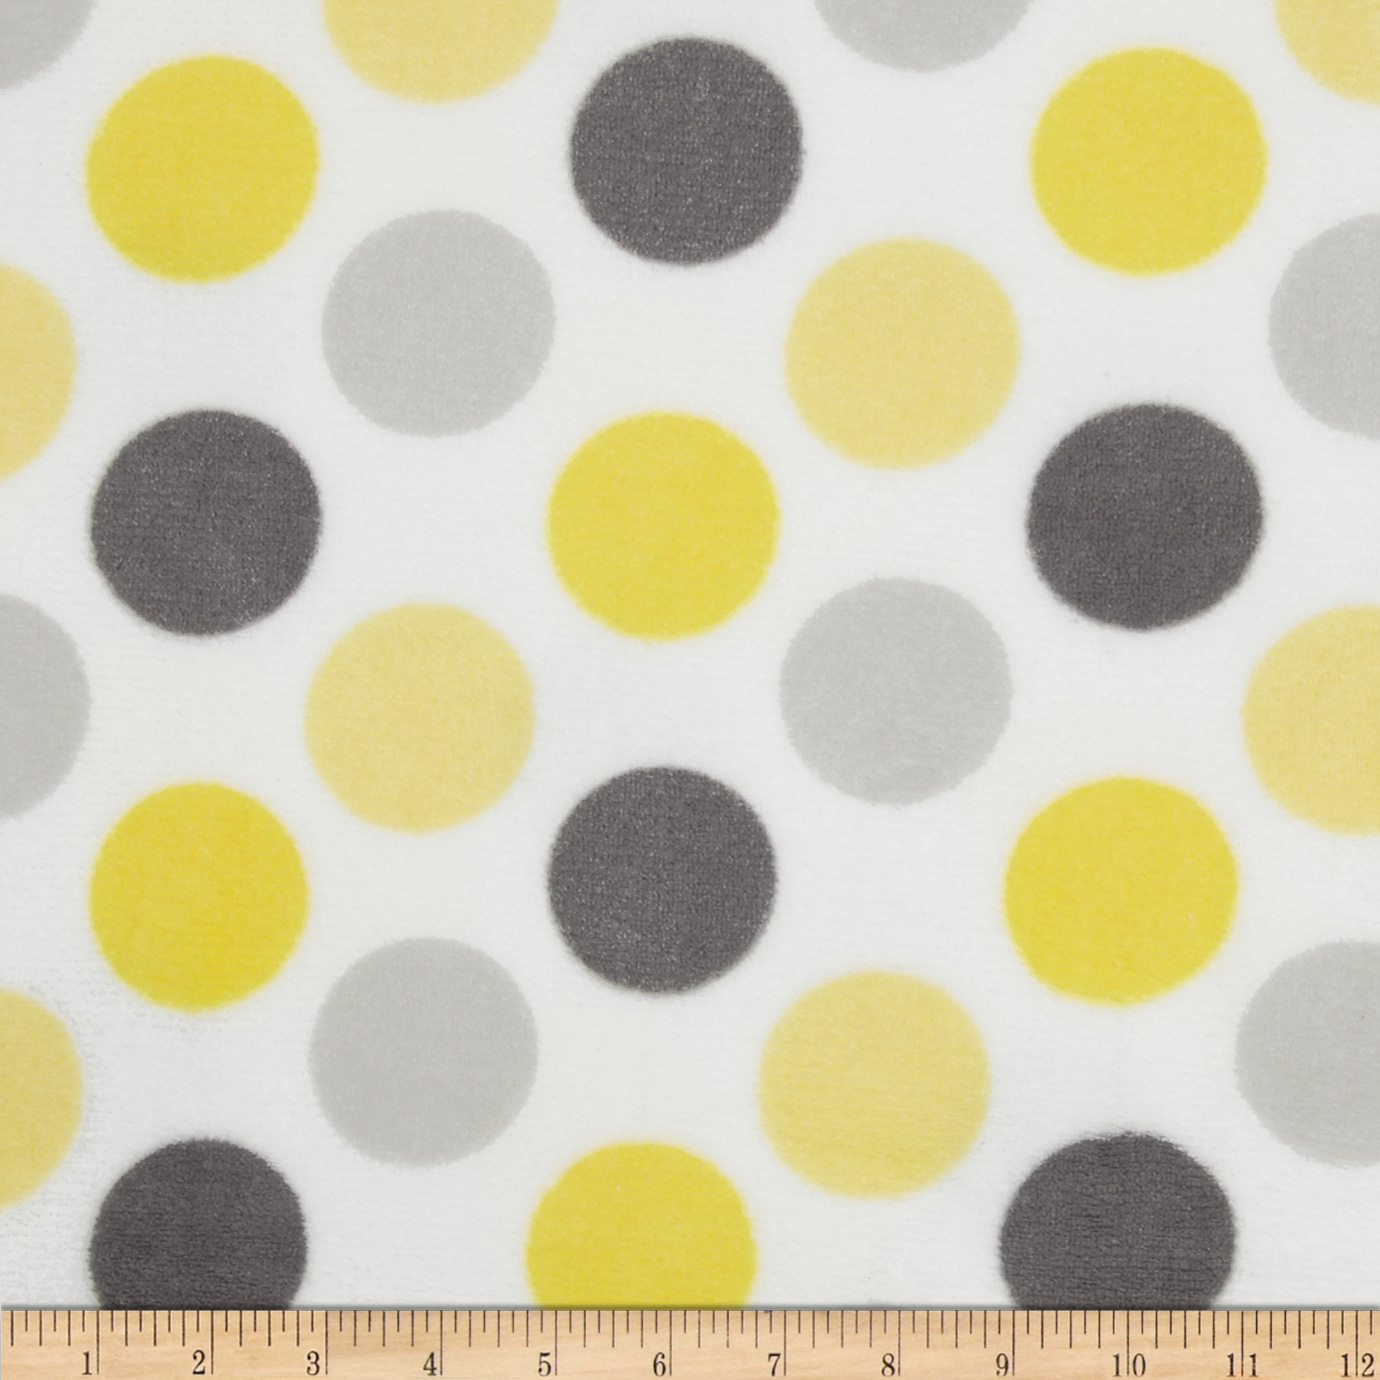 Plush Coral Fleece Polka Dot Grey/Yellow Fabric